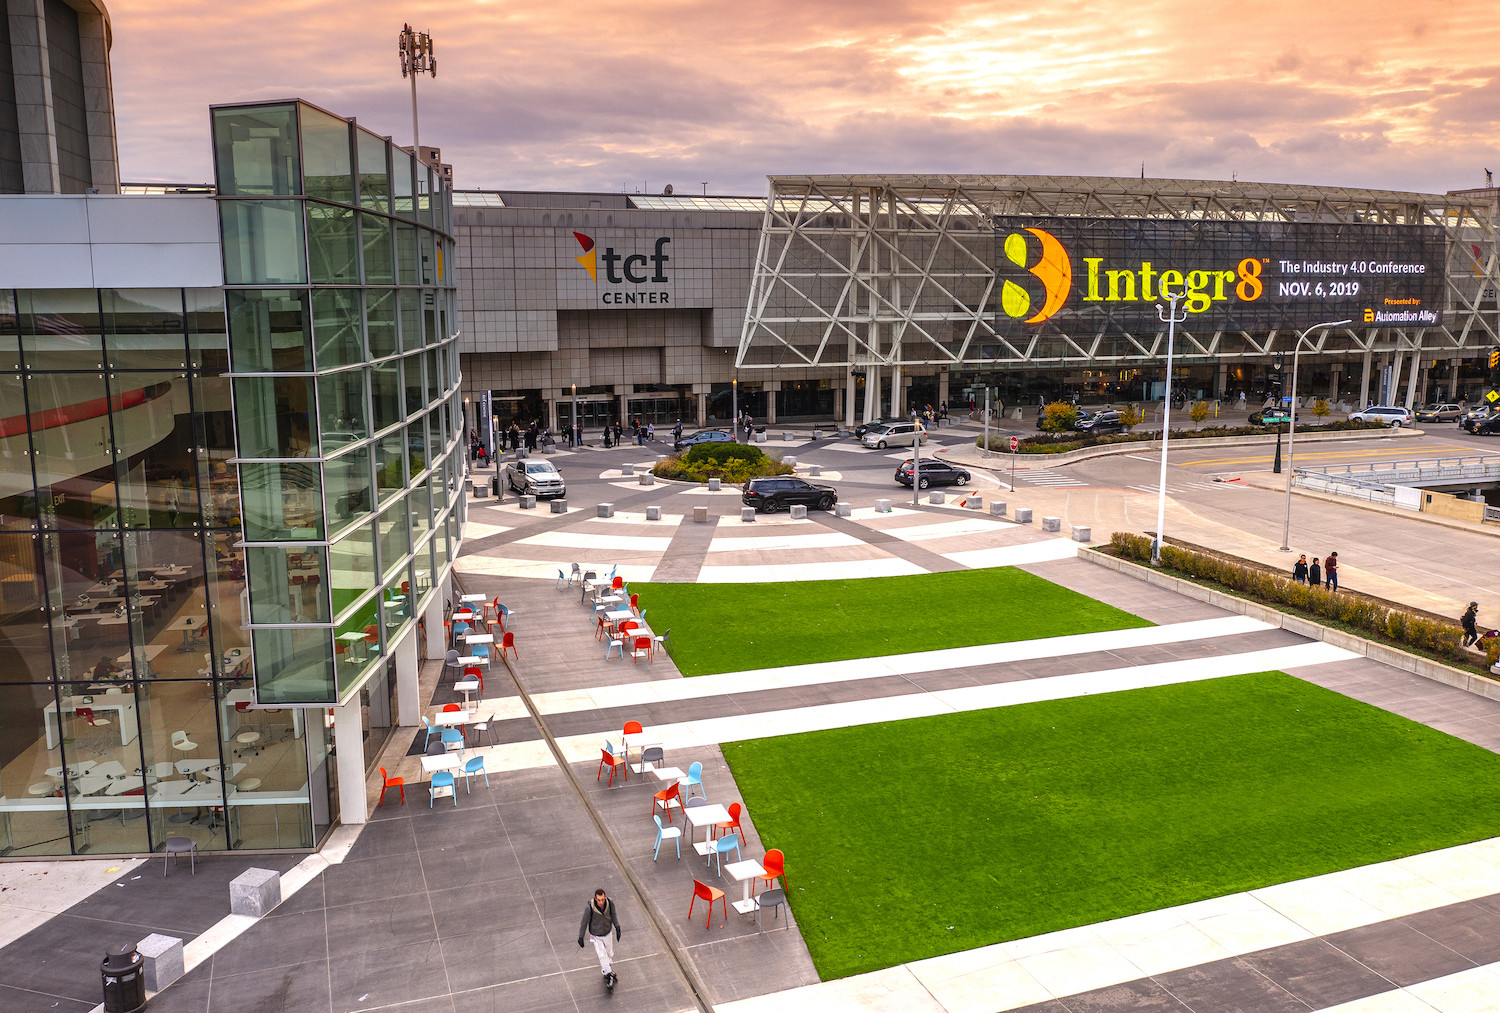 TCF Square provides 45,000 square feet of outdoor event space